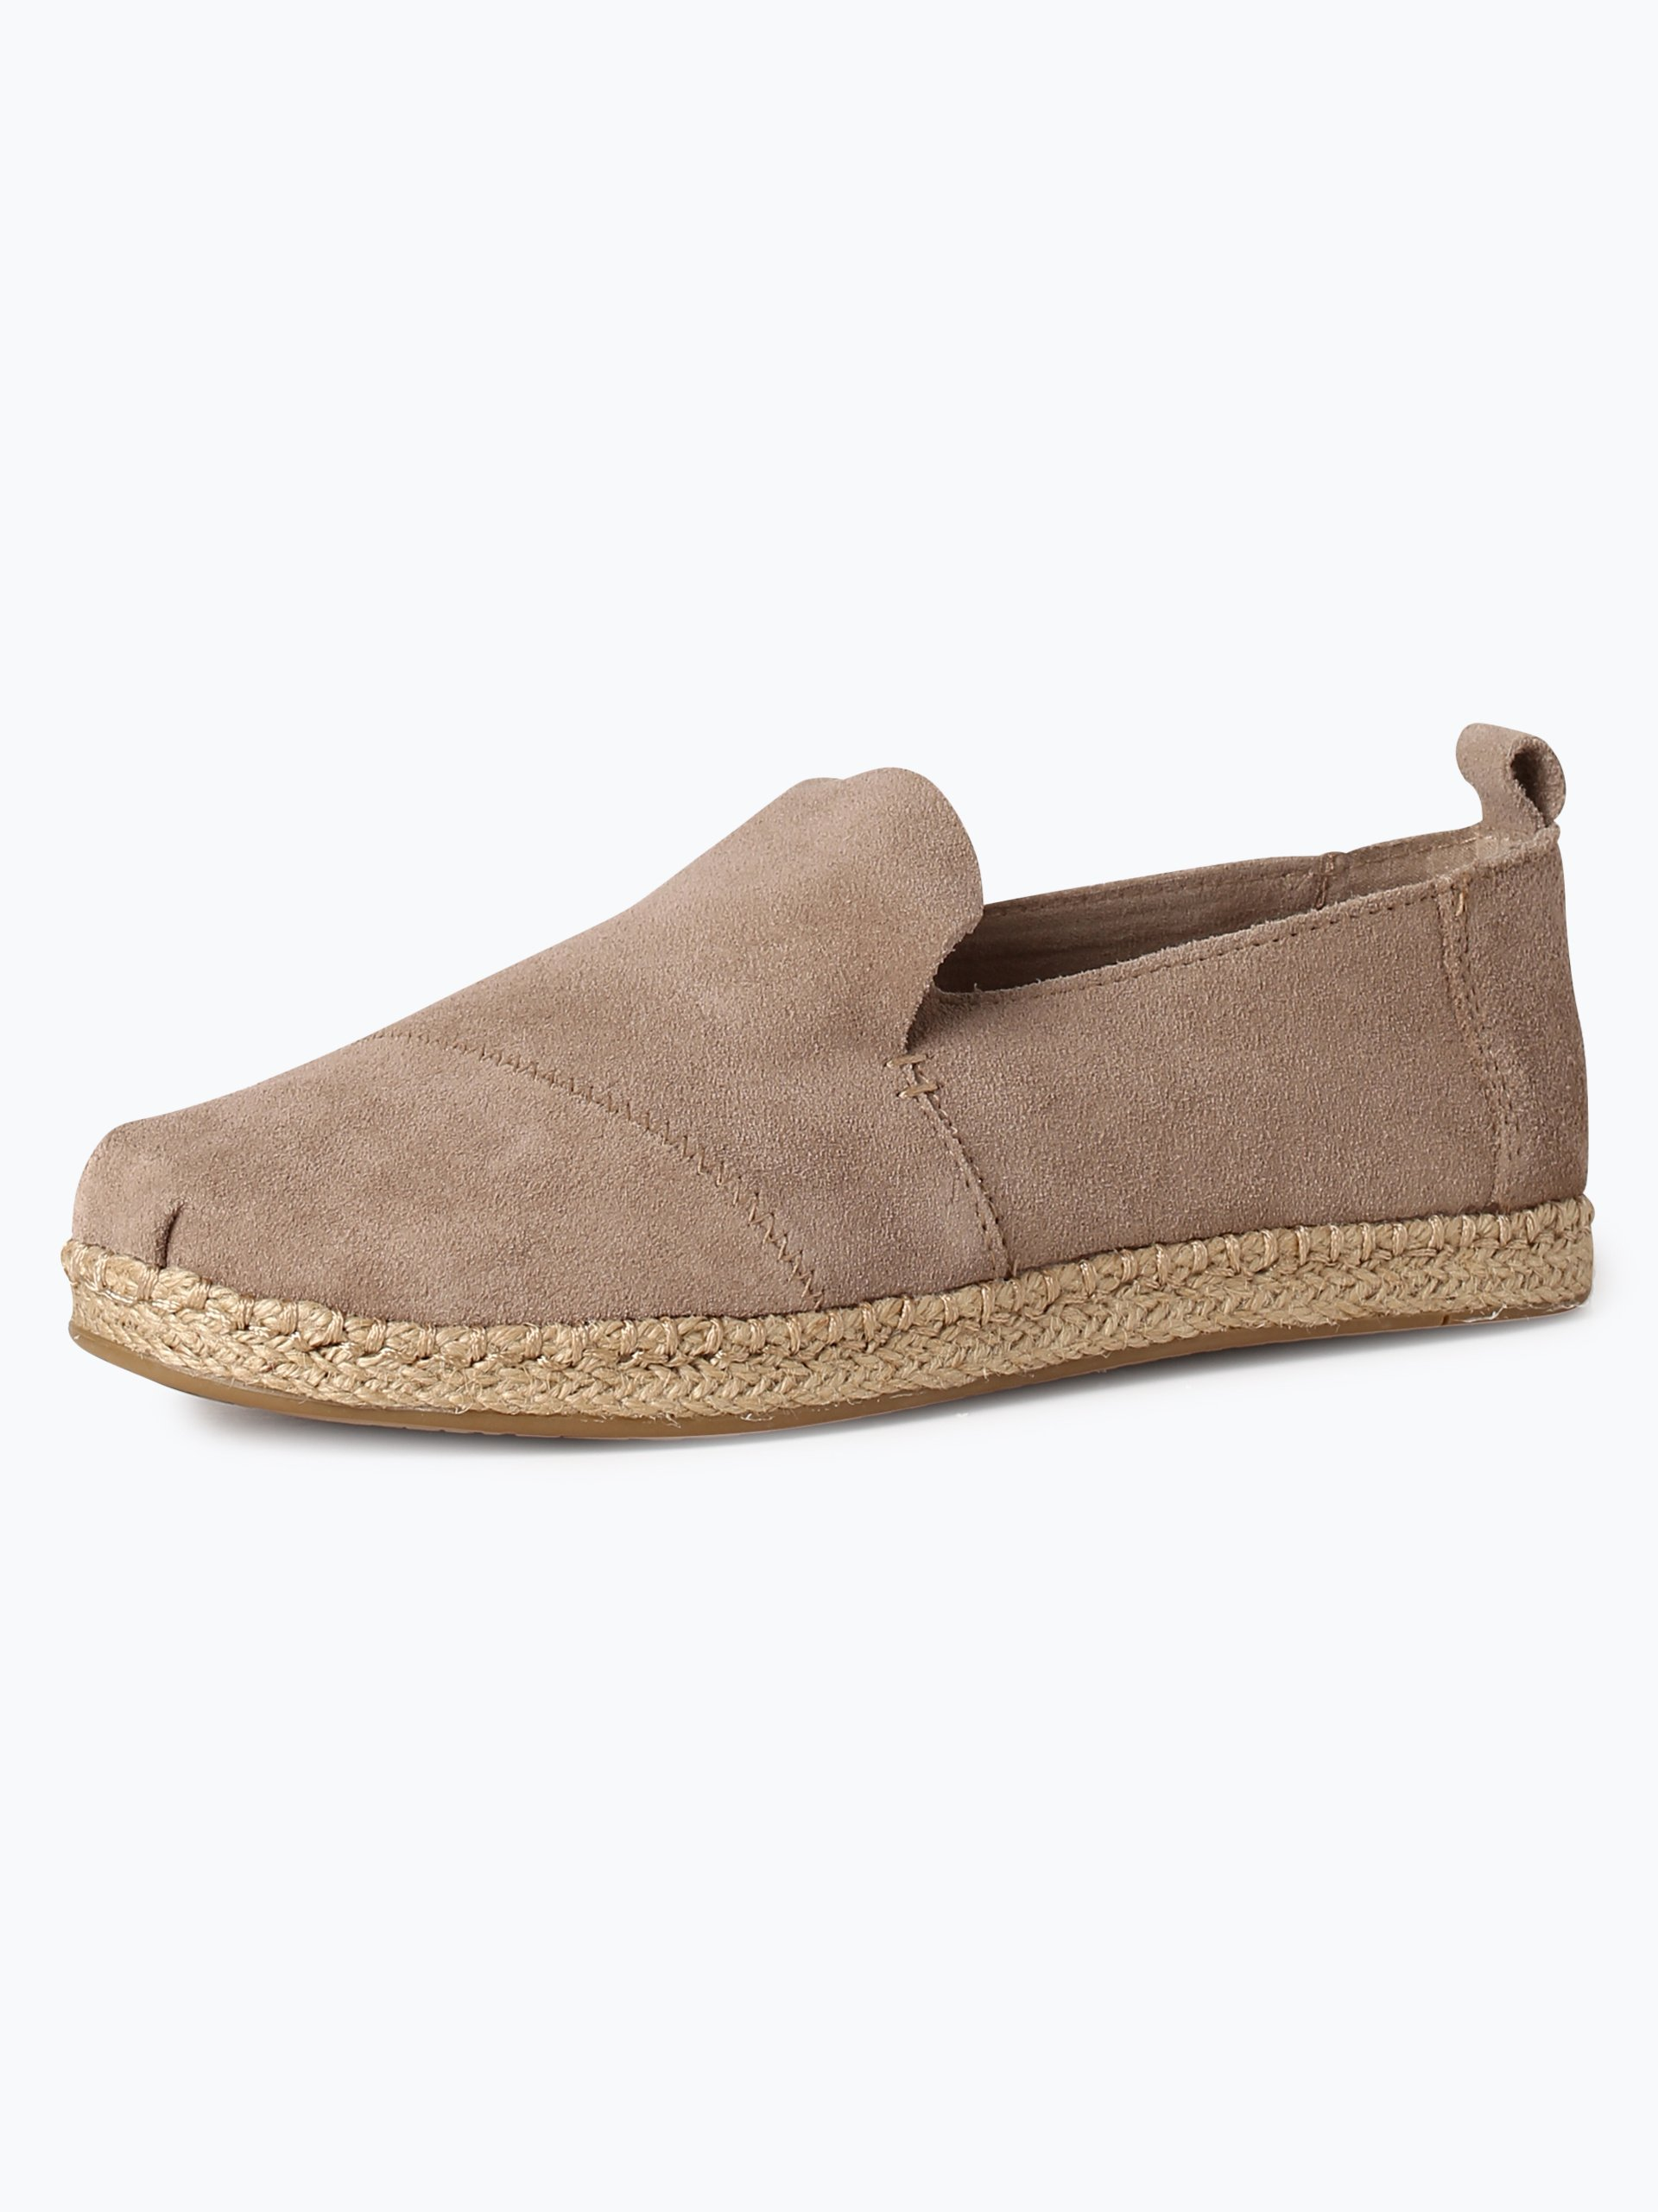 toms damen espadrilles aus leder taupe uni online kaufen vangraaf com. Black Bedroom Furniture Sets. Home Design Ideas